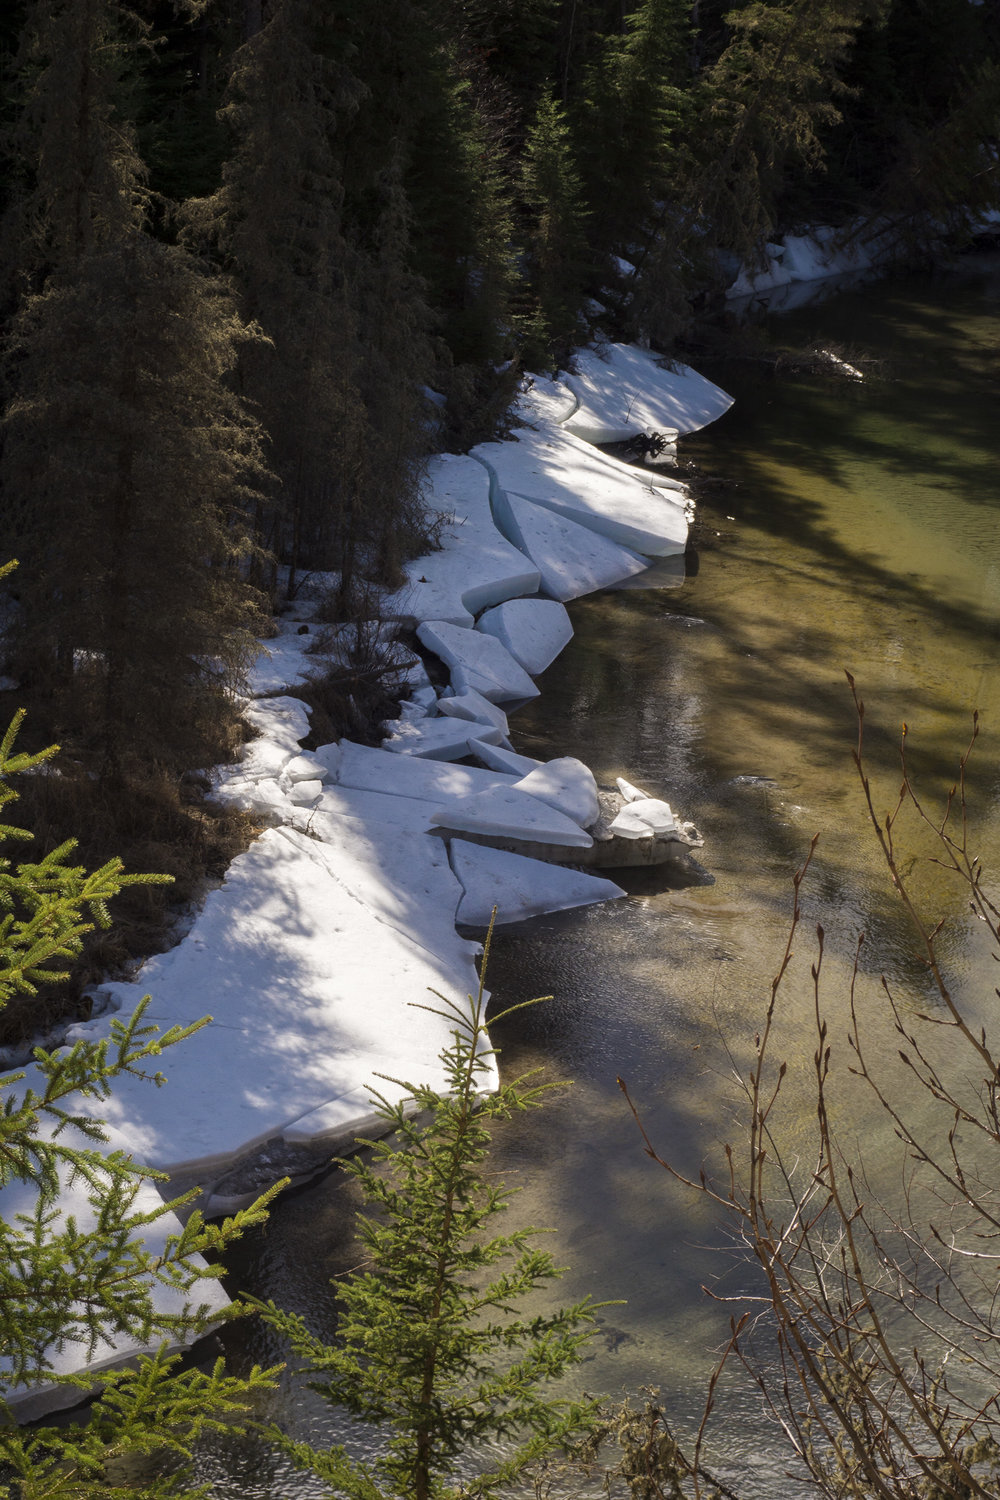 Ice break-up on the Kingsmere River, Prince Albert National Park